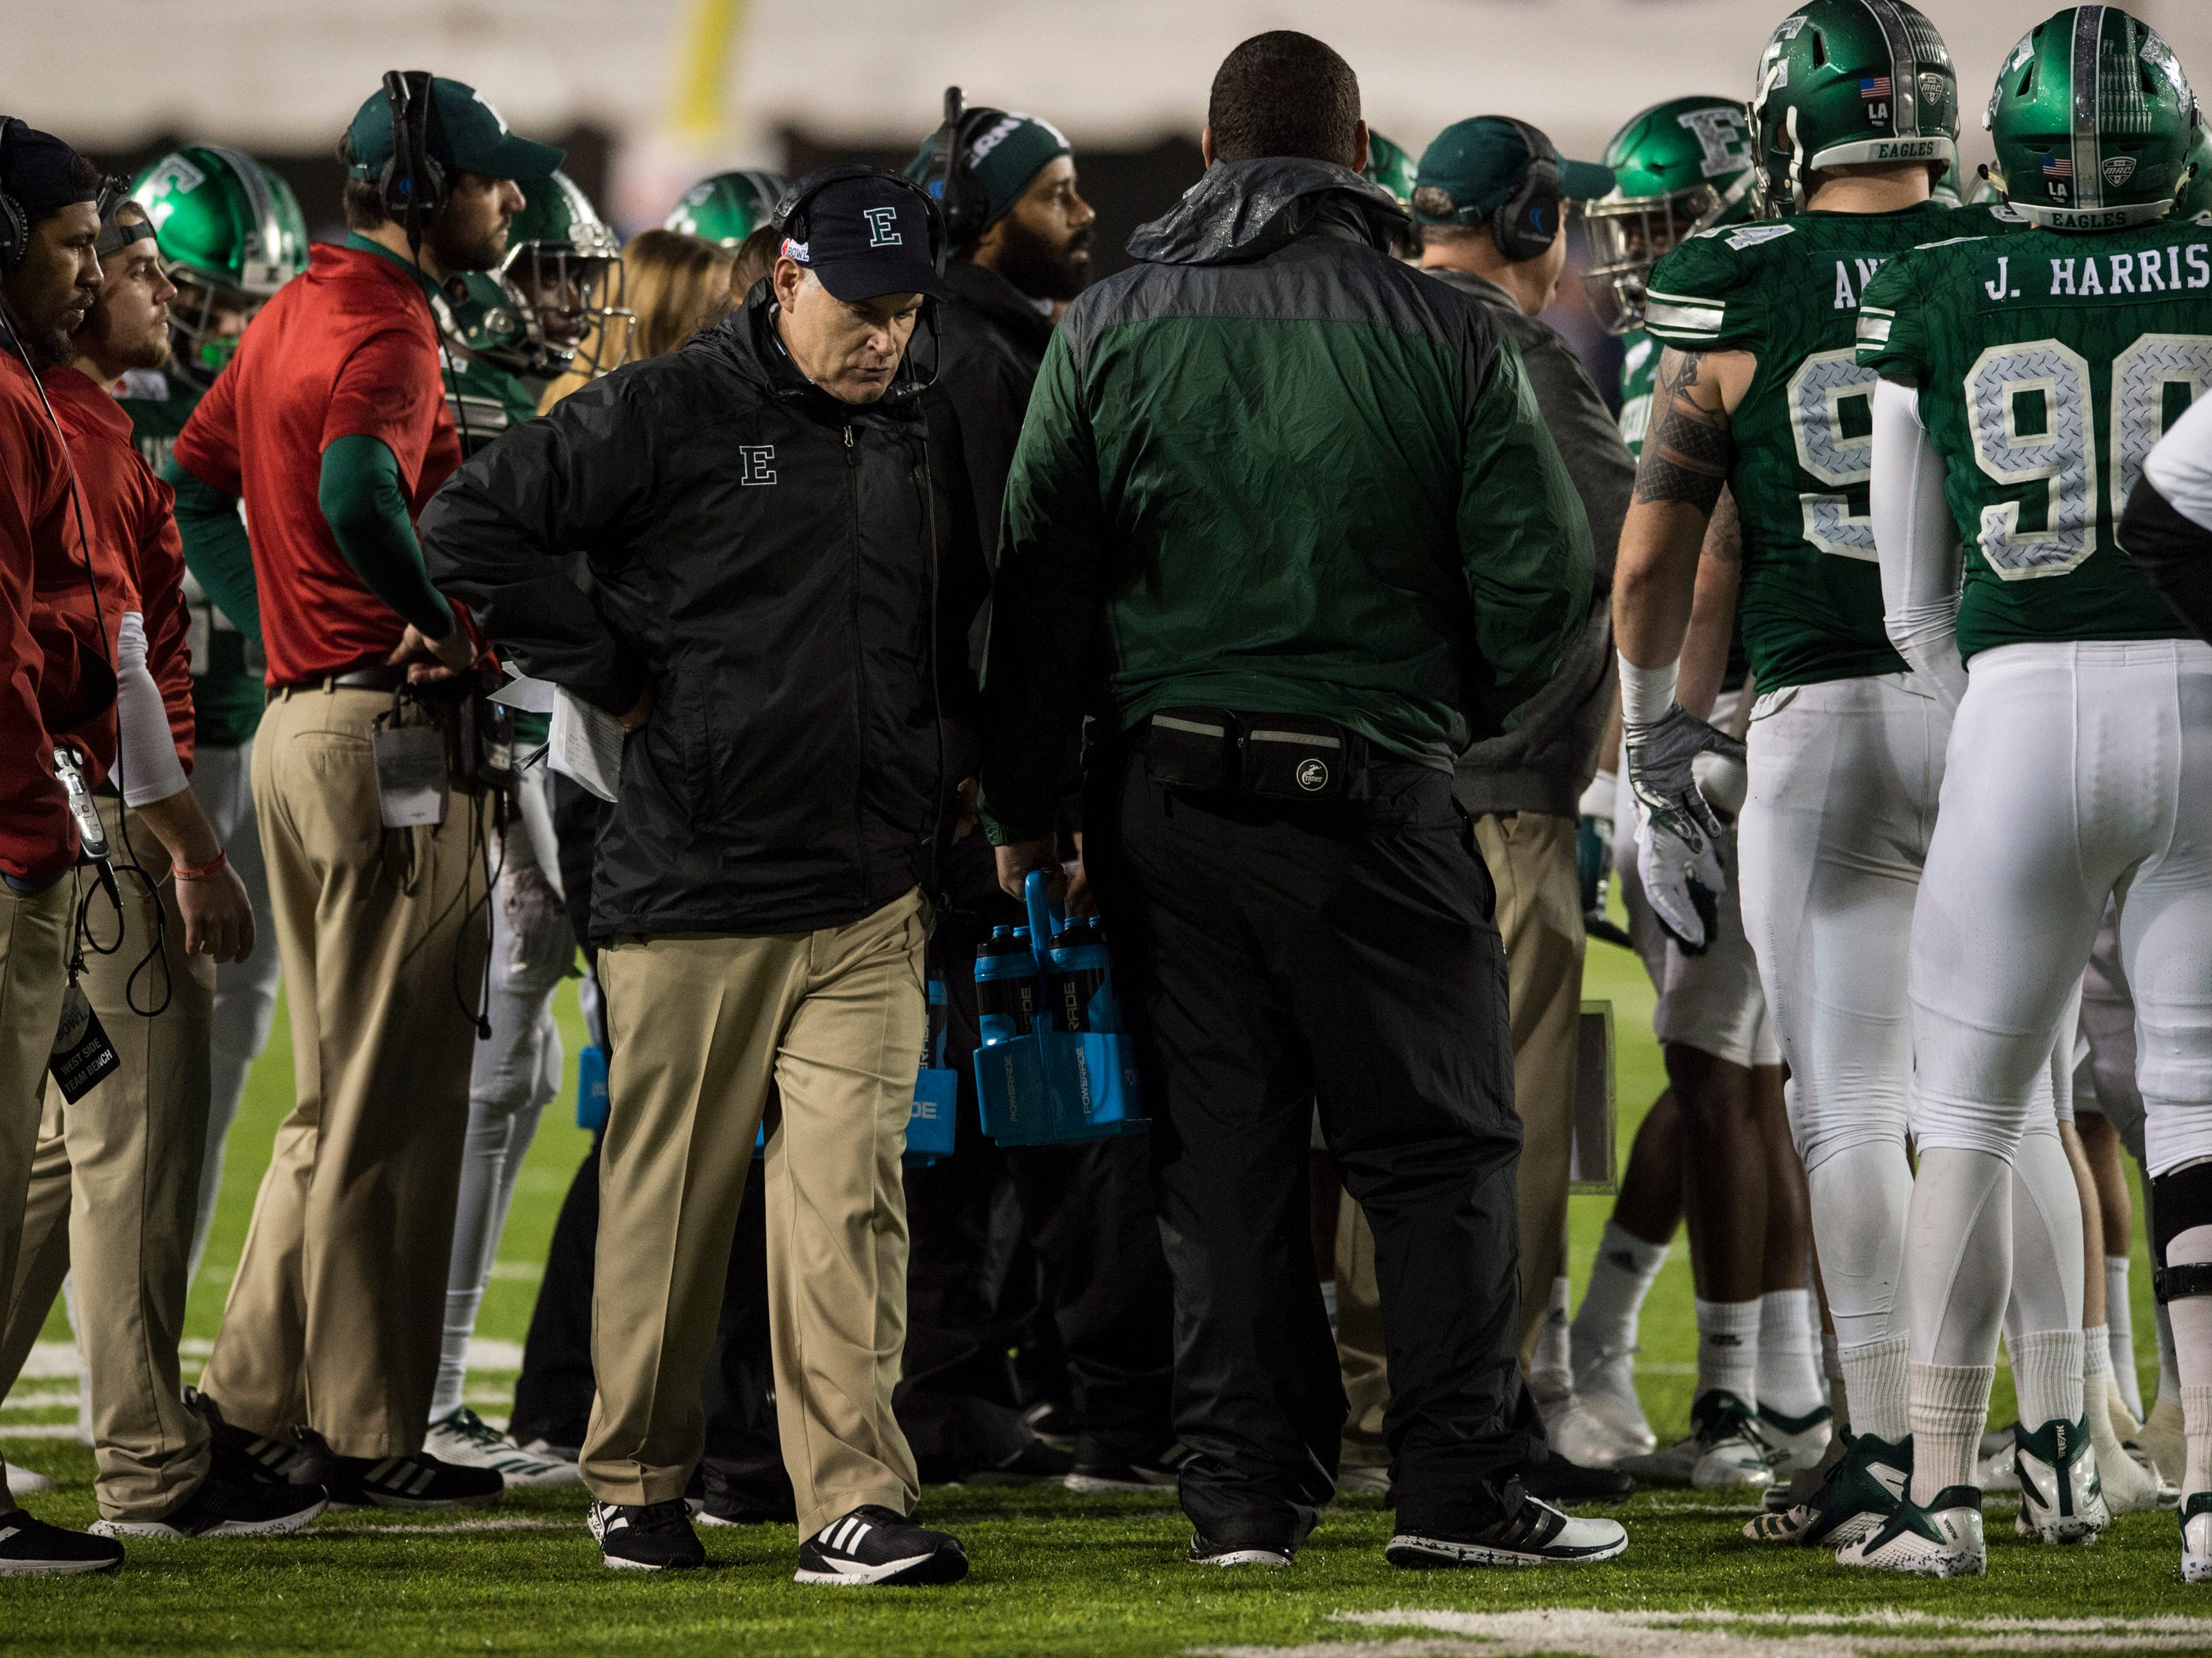 Eastern Michigan head coach Chris Creighton walks around his teams huddle during a timeout during the Camellia Bowl at Cramton Bowl in Montgomery, Ala., on Saturday, Dec. 15, 2018. Georgia Southern defeated Eastern Michigan 23-21.